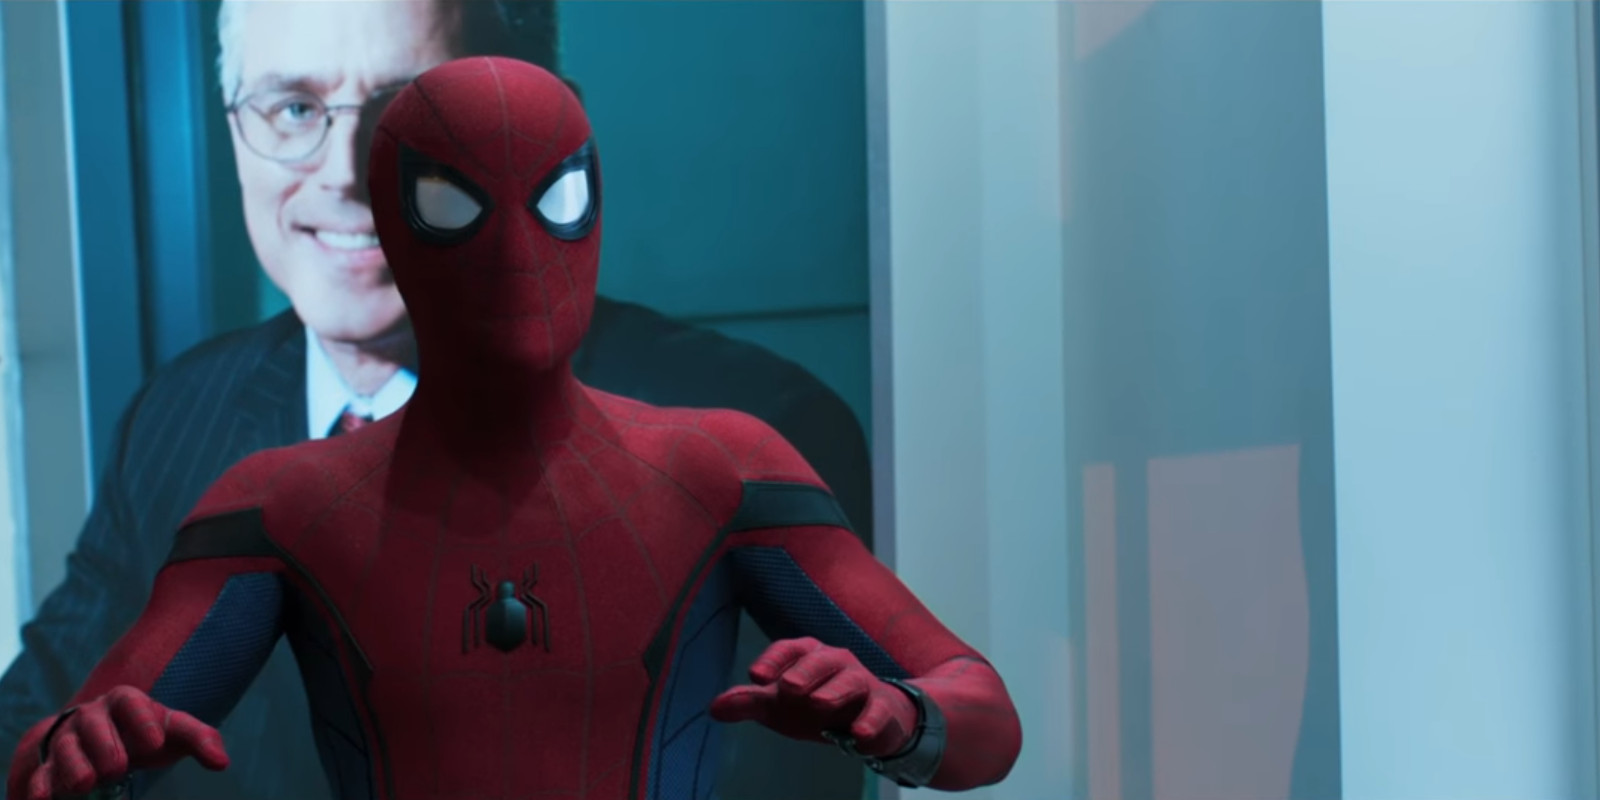 Spider-Man Homecoming - Spider-Man stops robbery